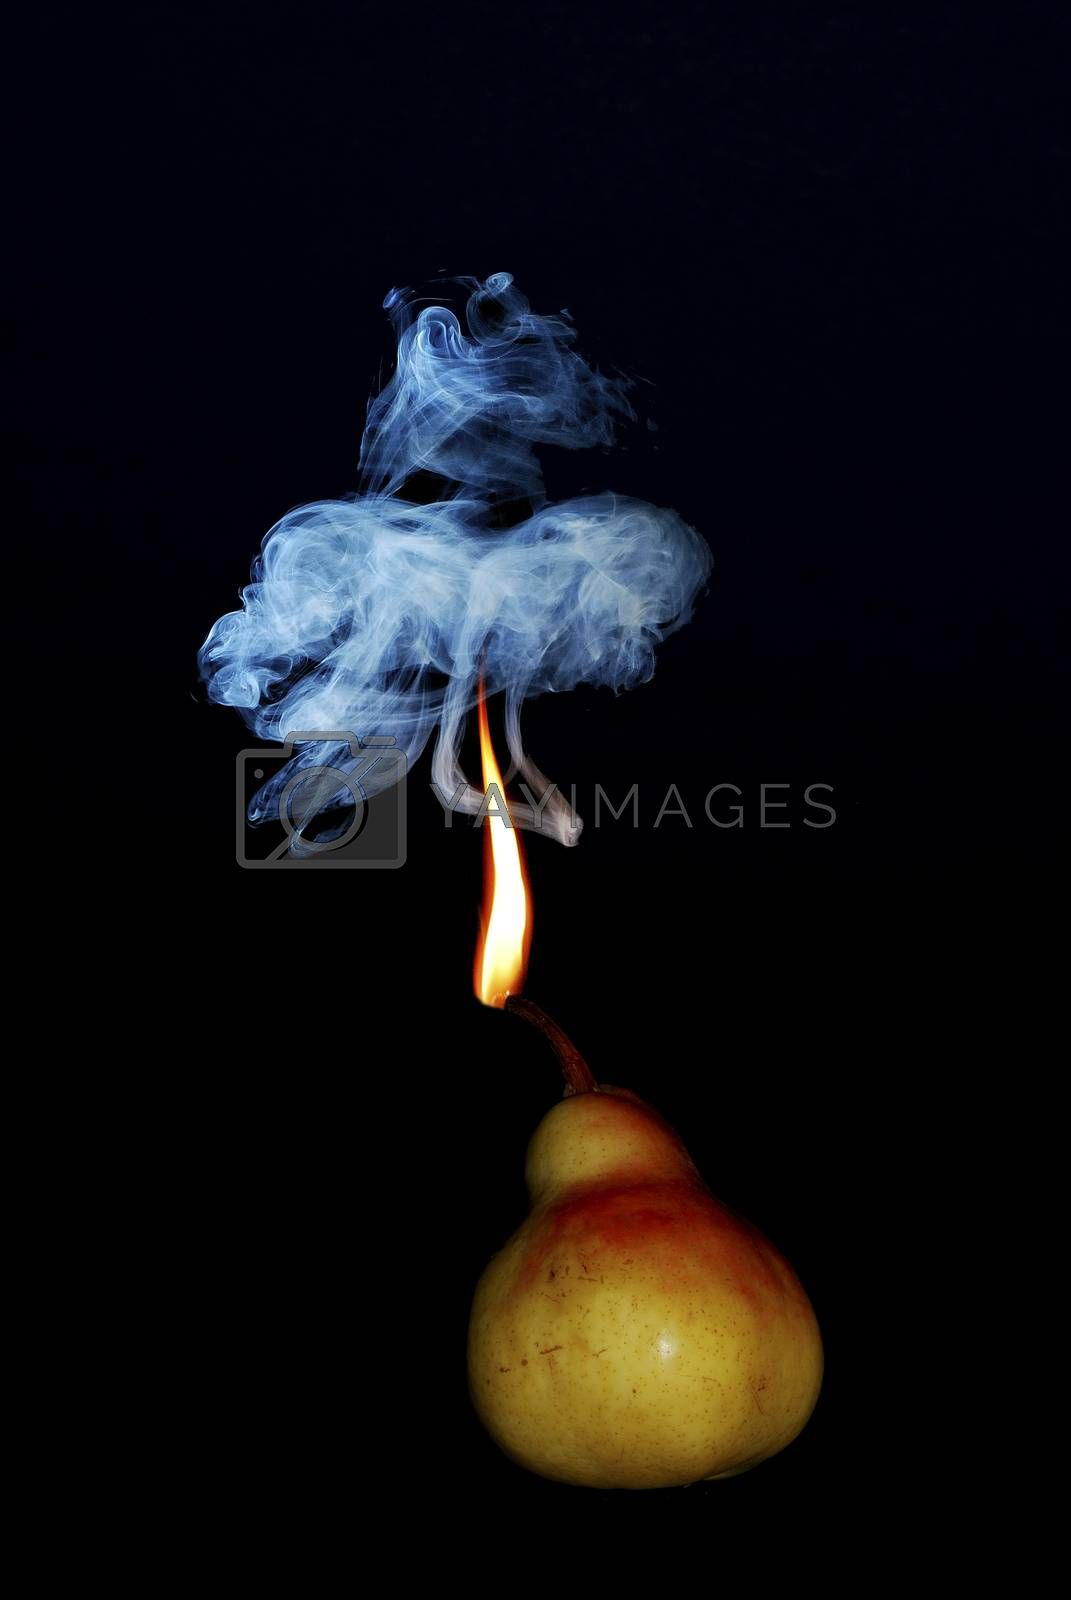 pear portrait with a flame and gray smoke on black background